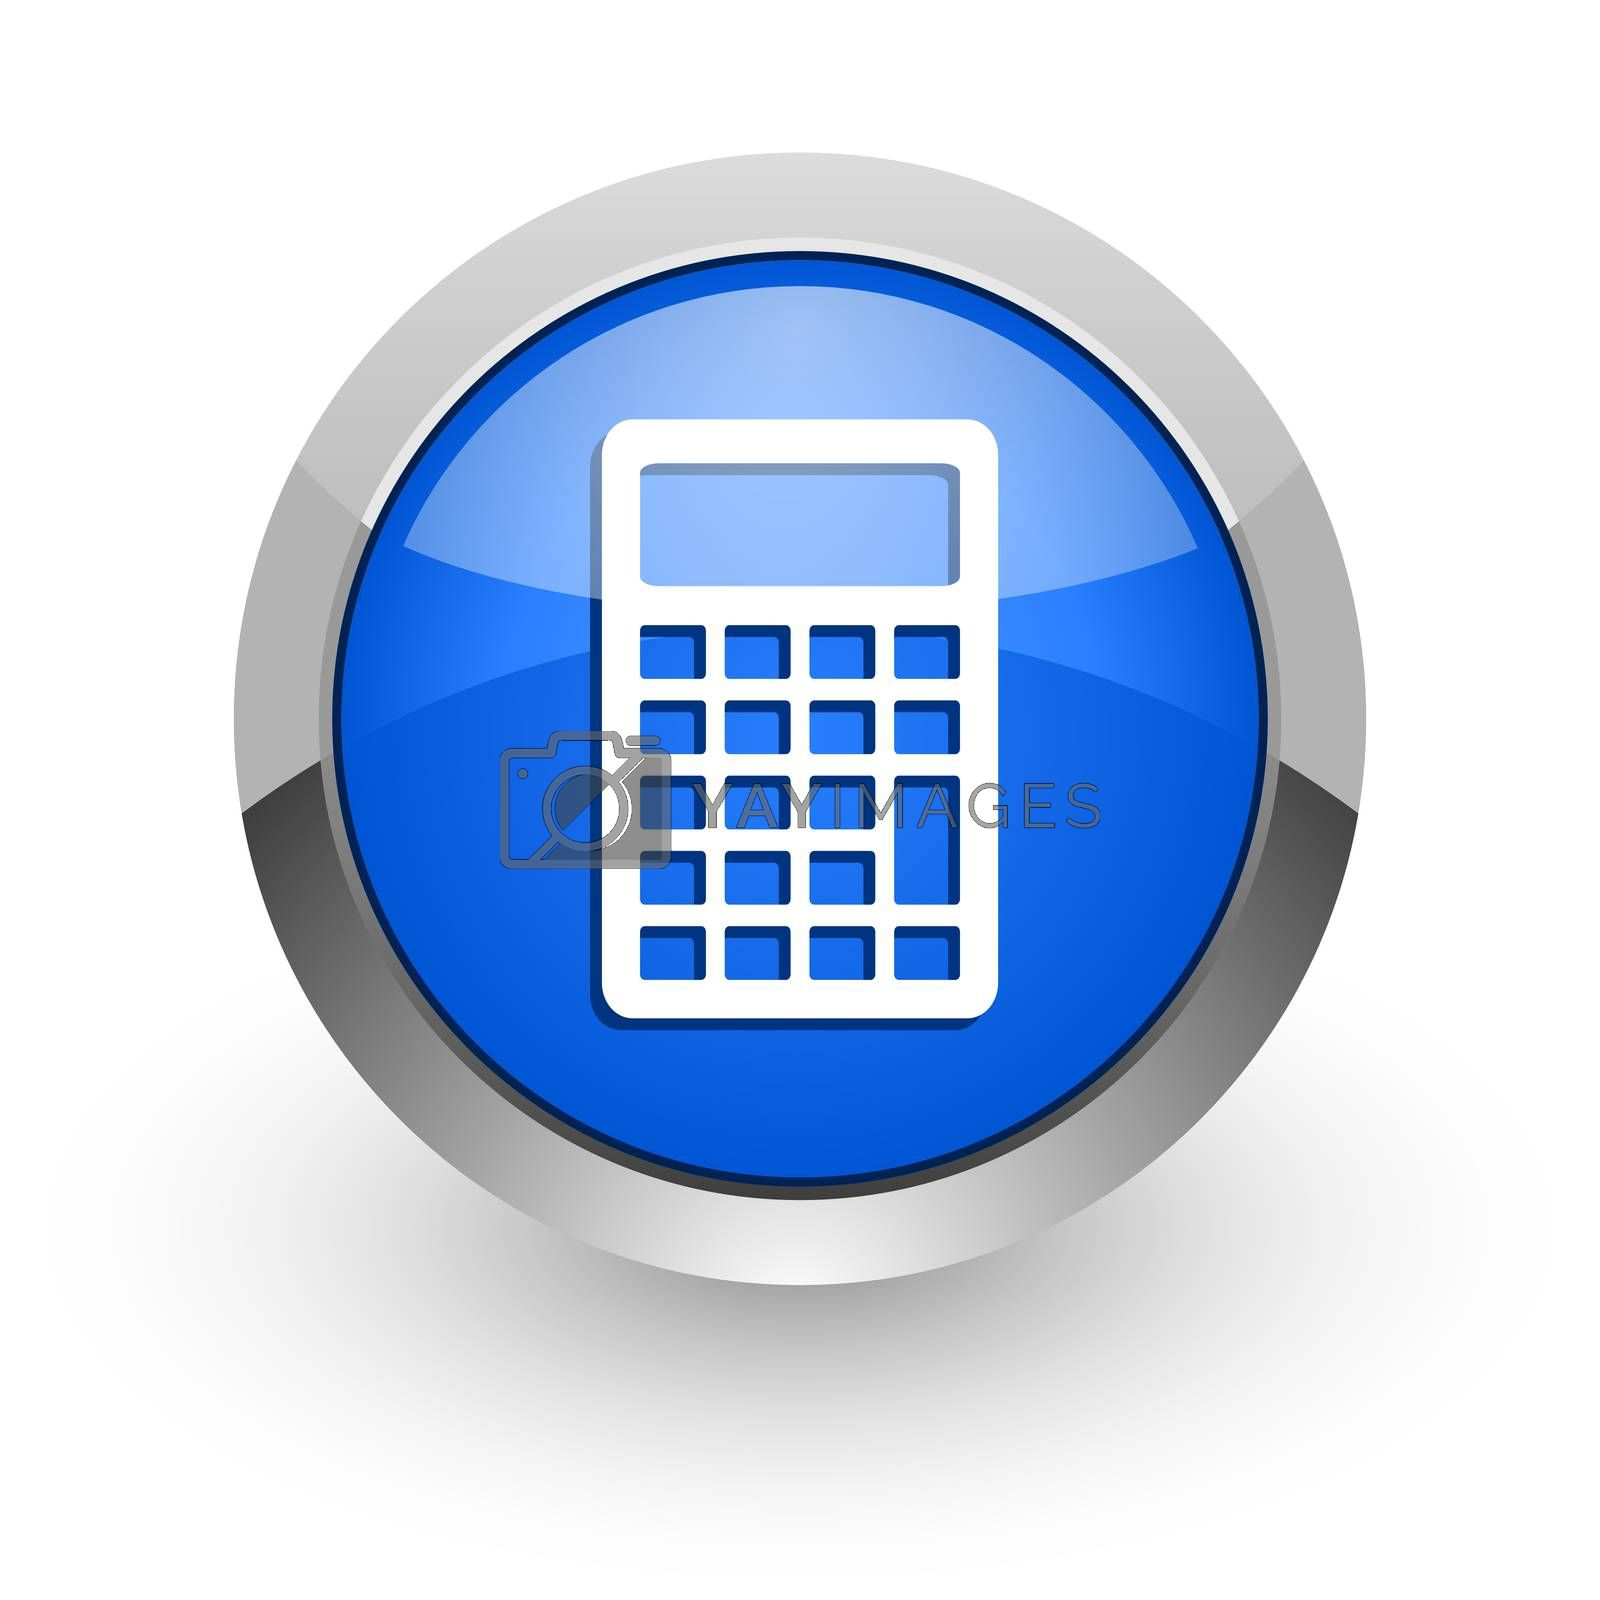 Royalty free image of calculator blue glossy web icon by alexwhite